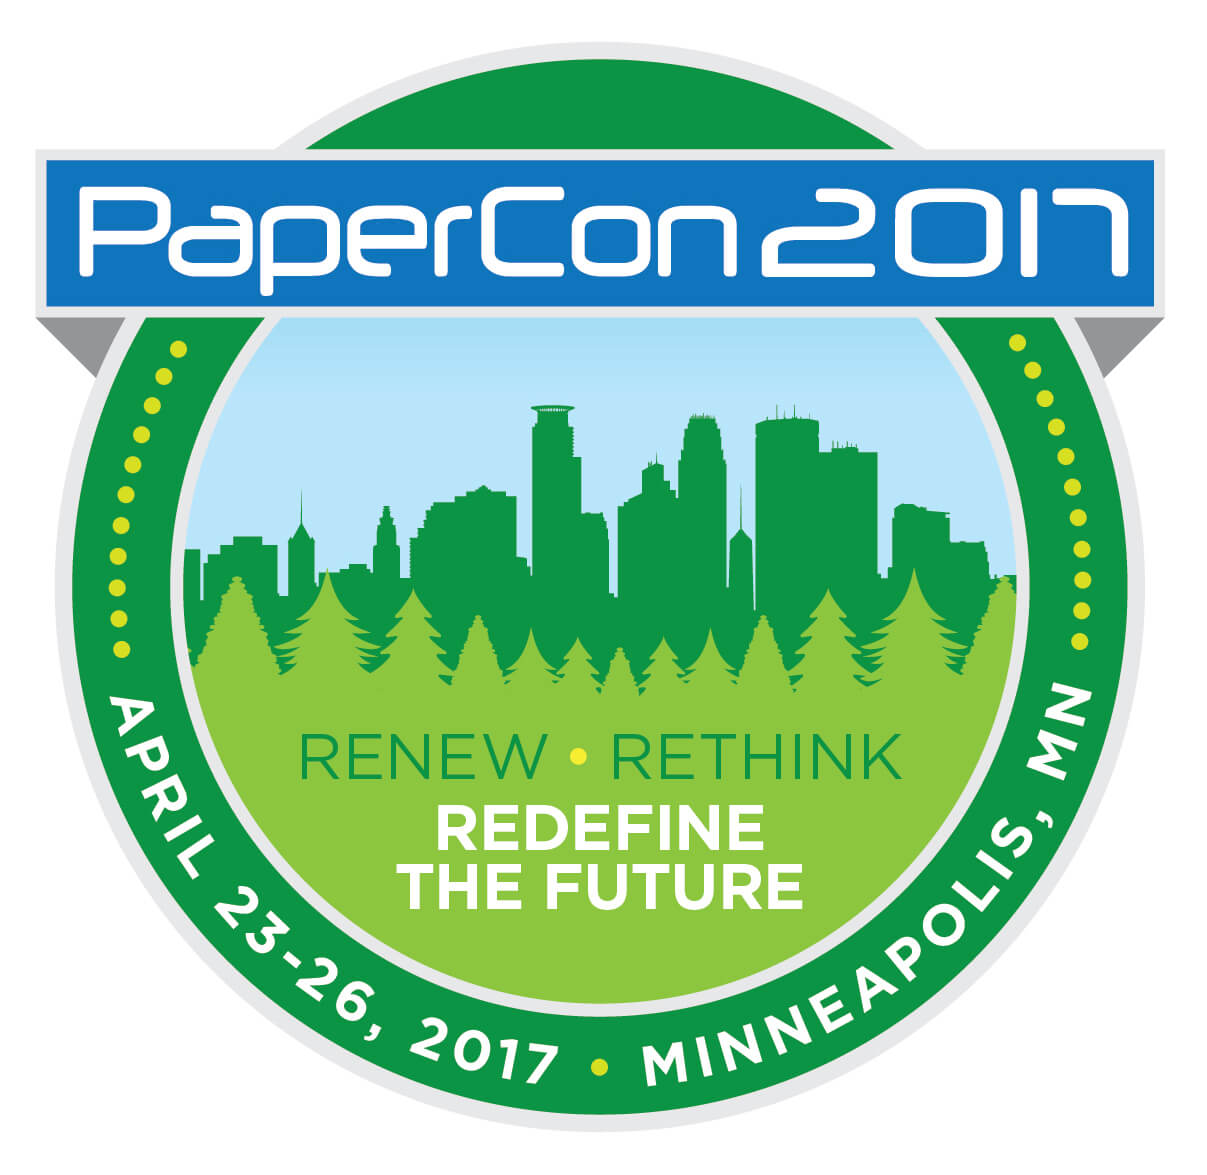 PaperCon